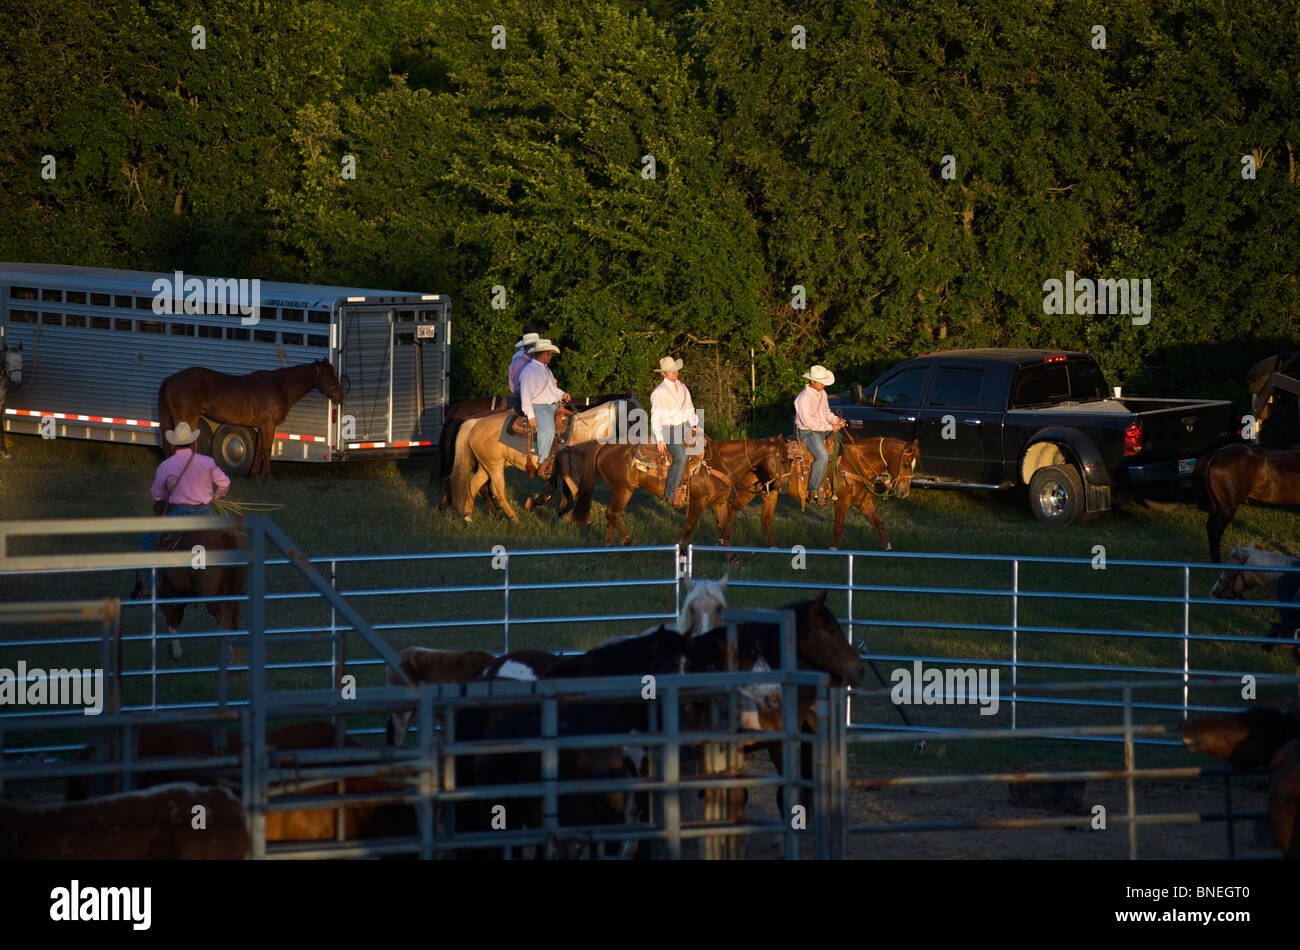 Cowboy members of PRCA riding horses backstage at rodeo event in Bridgeport, Texas, USA Stock Photo